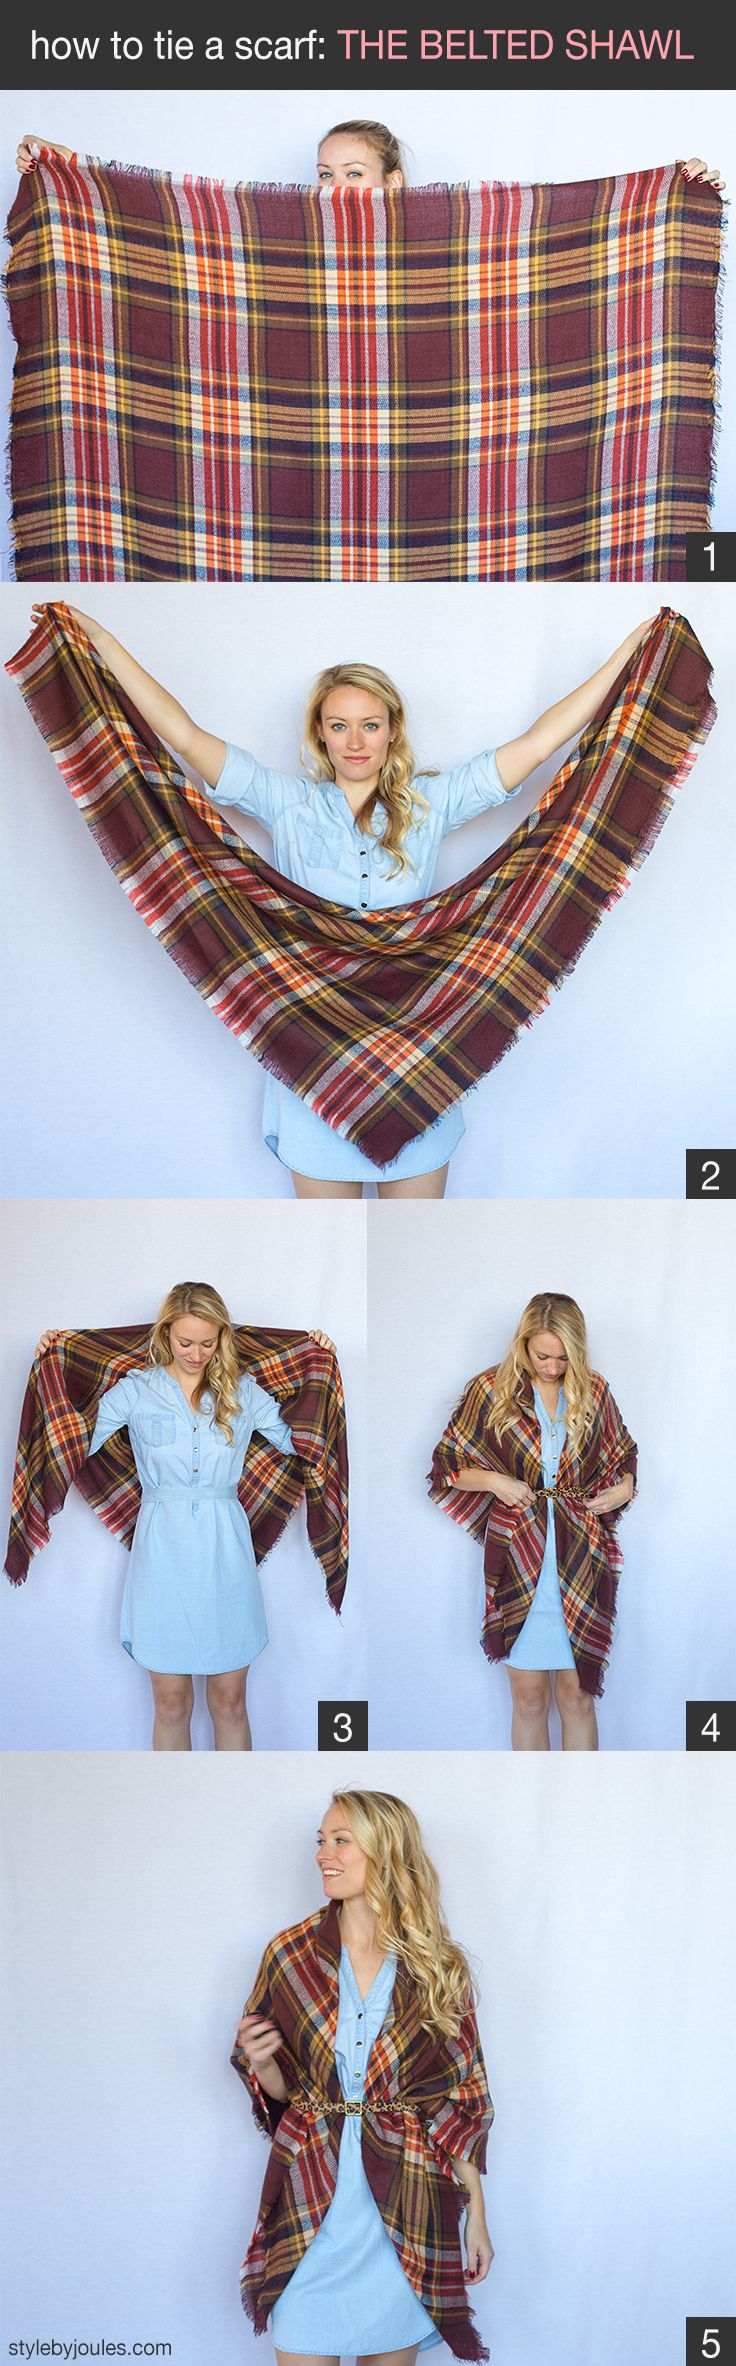 How To Tie A Scarf, How To Wear A Scarf, Styling A Blanket Scarf